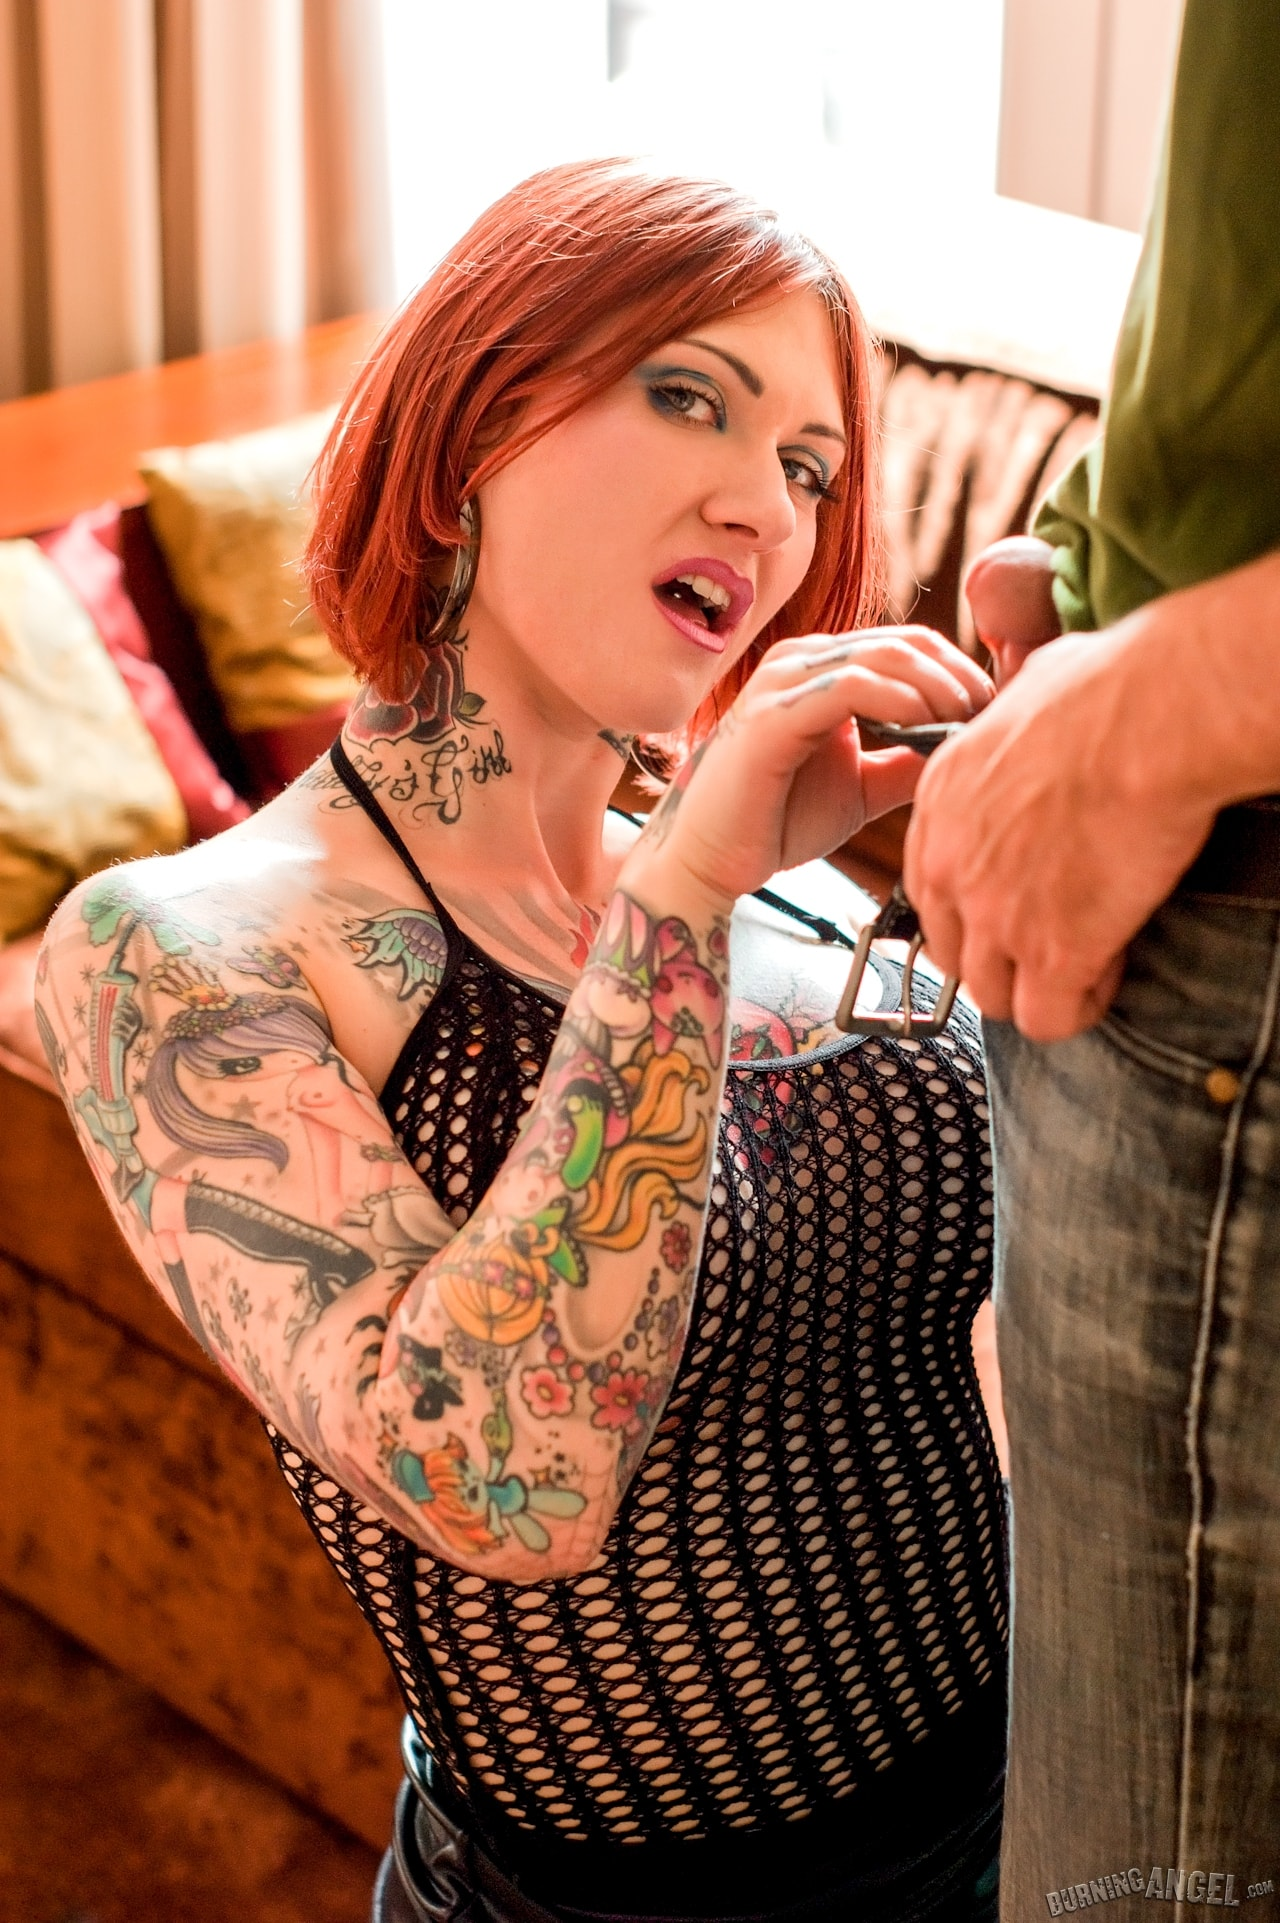 Burning Angel 'Spunk On My Tattoo' starring Tallulah (Photo 3)